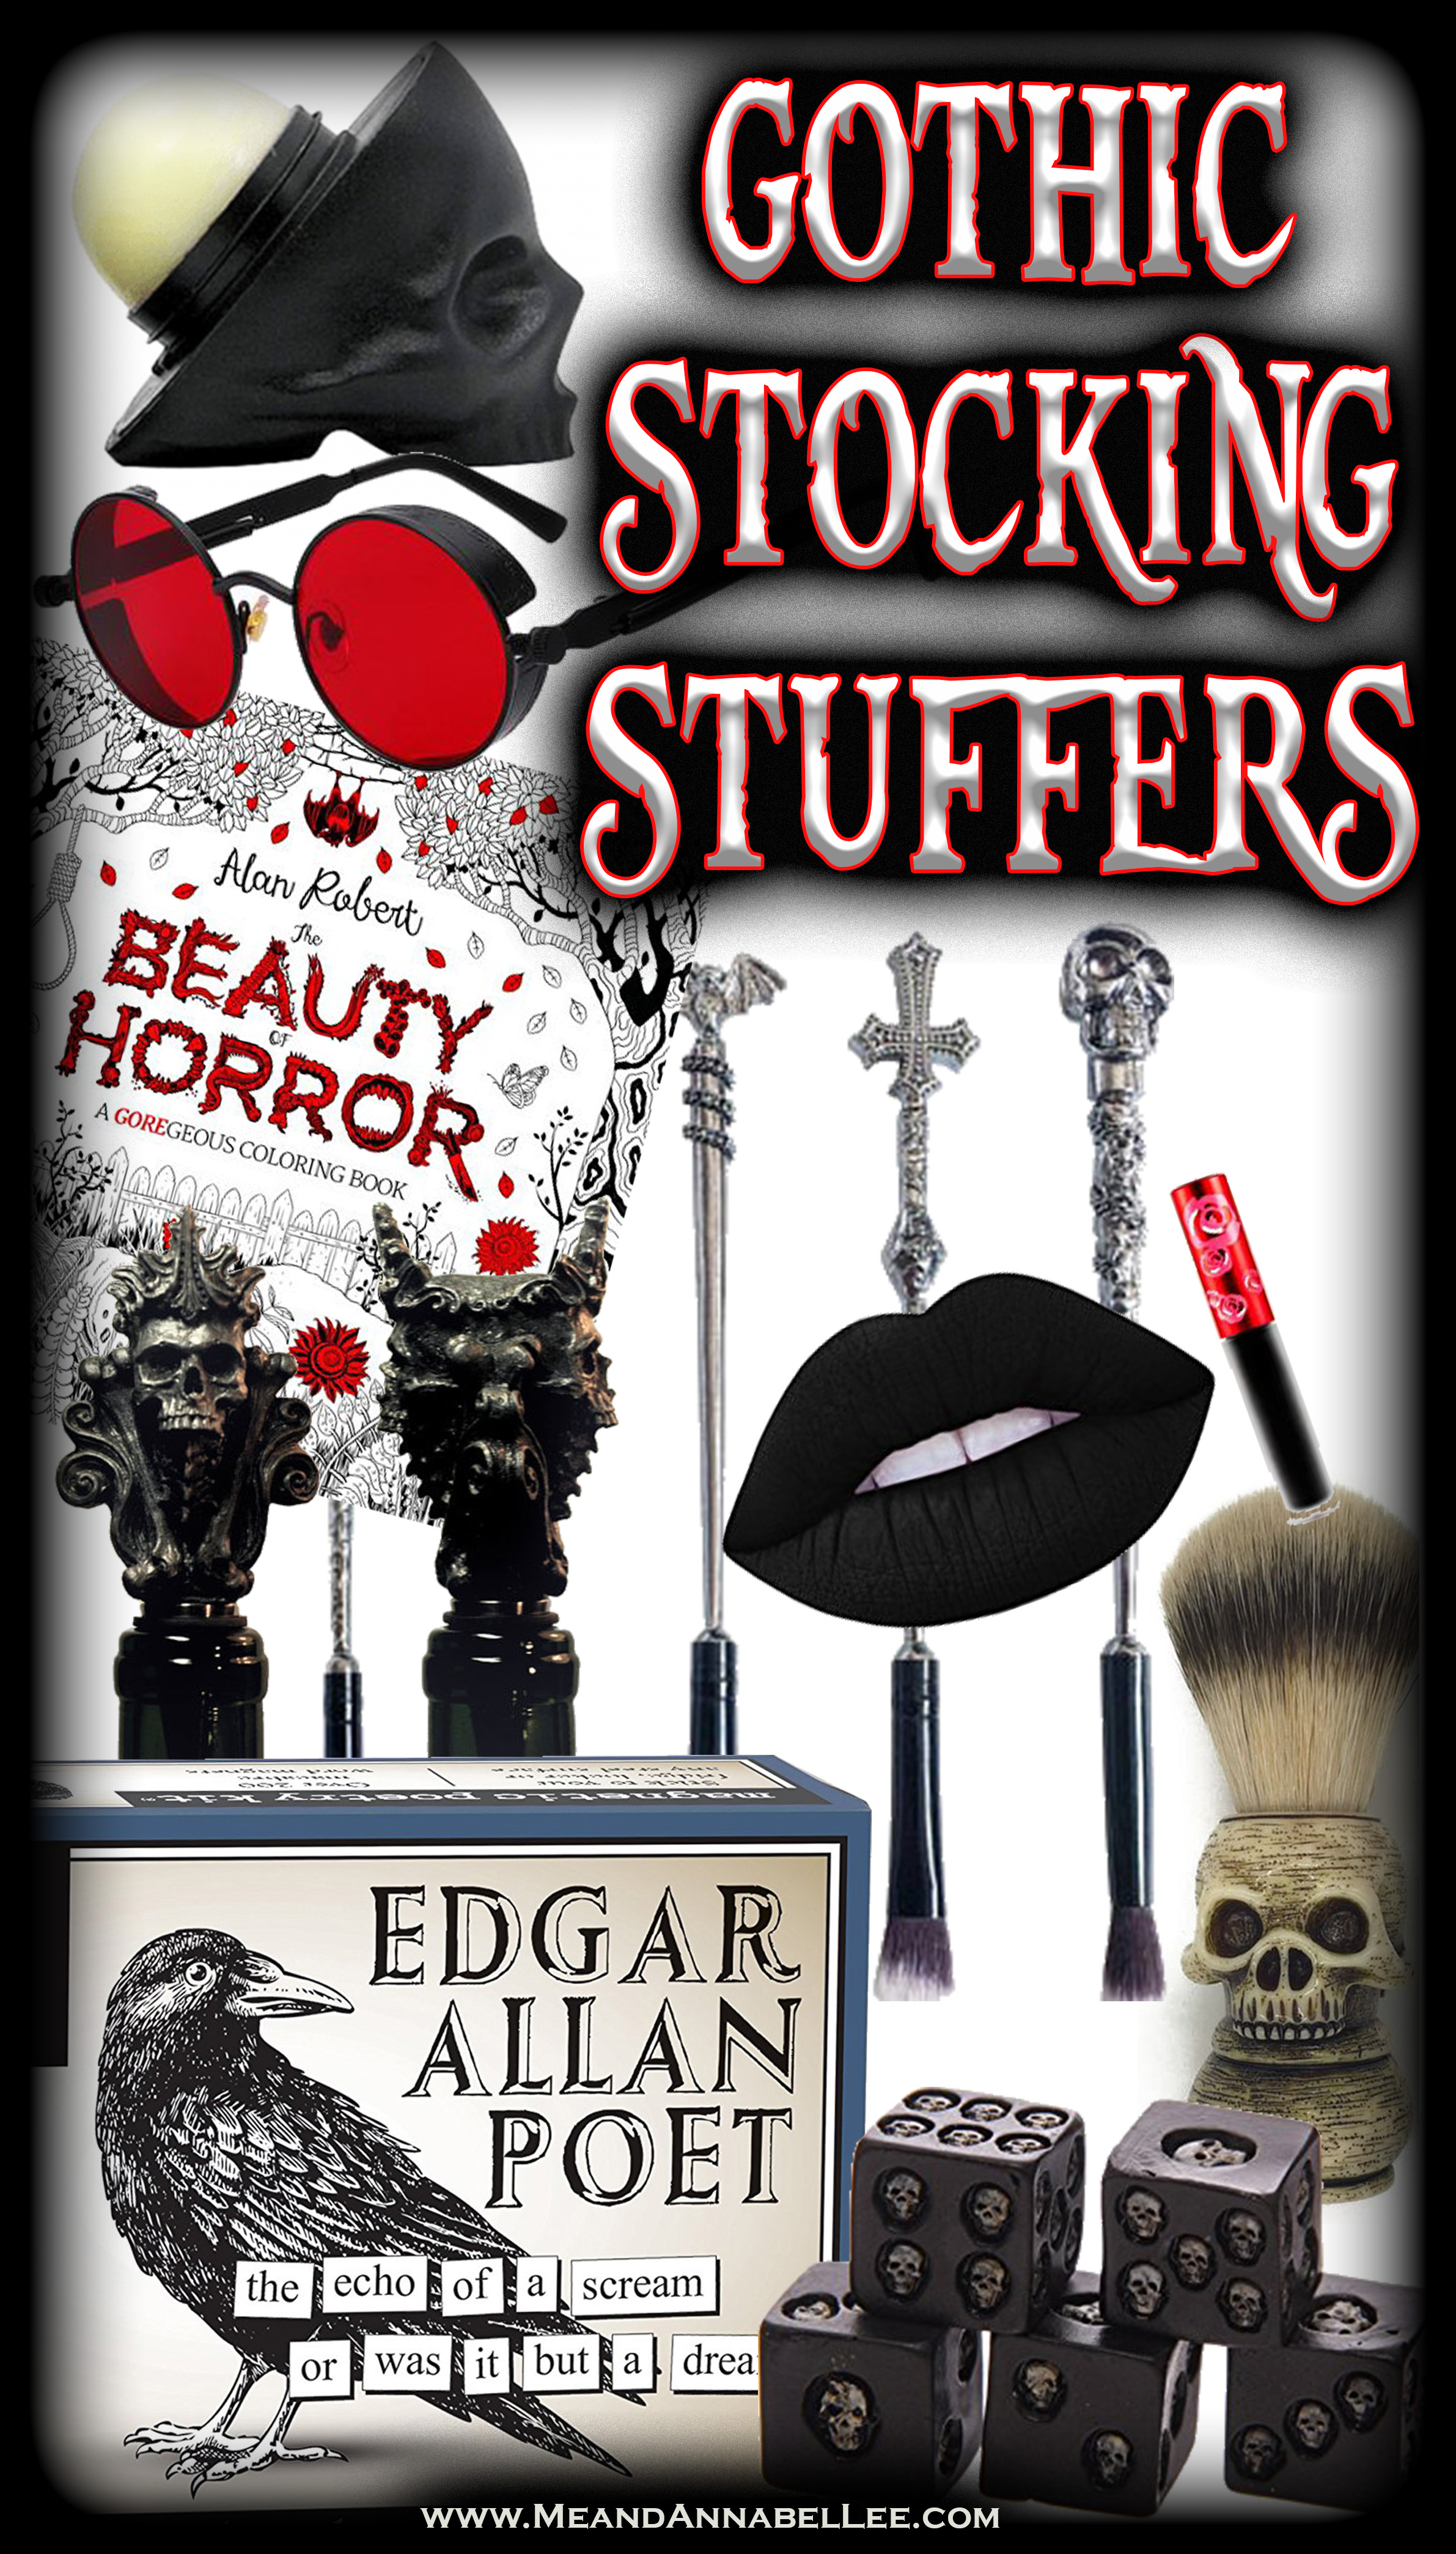 20 Macabre, Twisted, Unusual, Dark, Victorian, & Gothic Stocking Stuffers for the Darkling in Your Life | Skulls | Makeup | Bar Ware | Fashion Accessories | Fun & Games | Jewelry | Home Goods | Christmas Shopping | www.MeandAnnabelLee.com